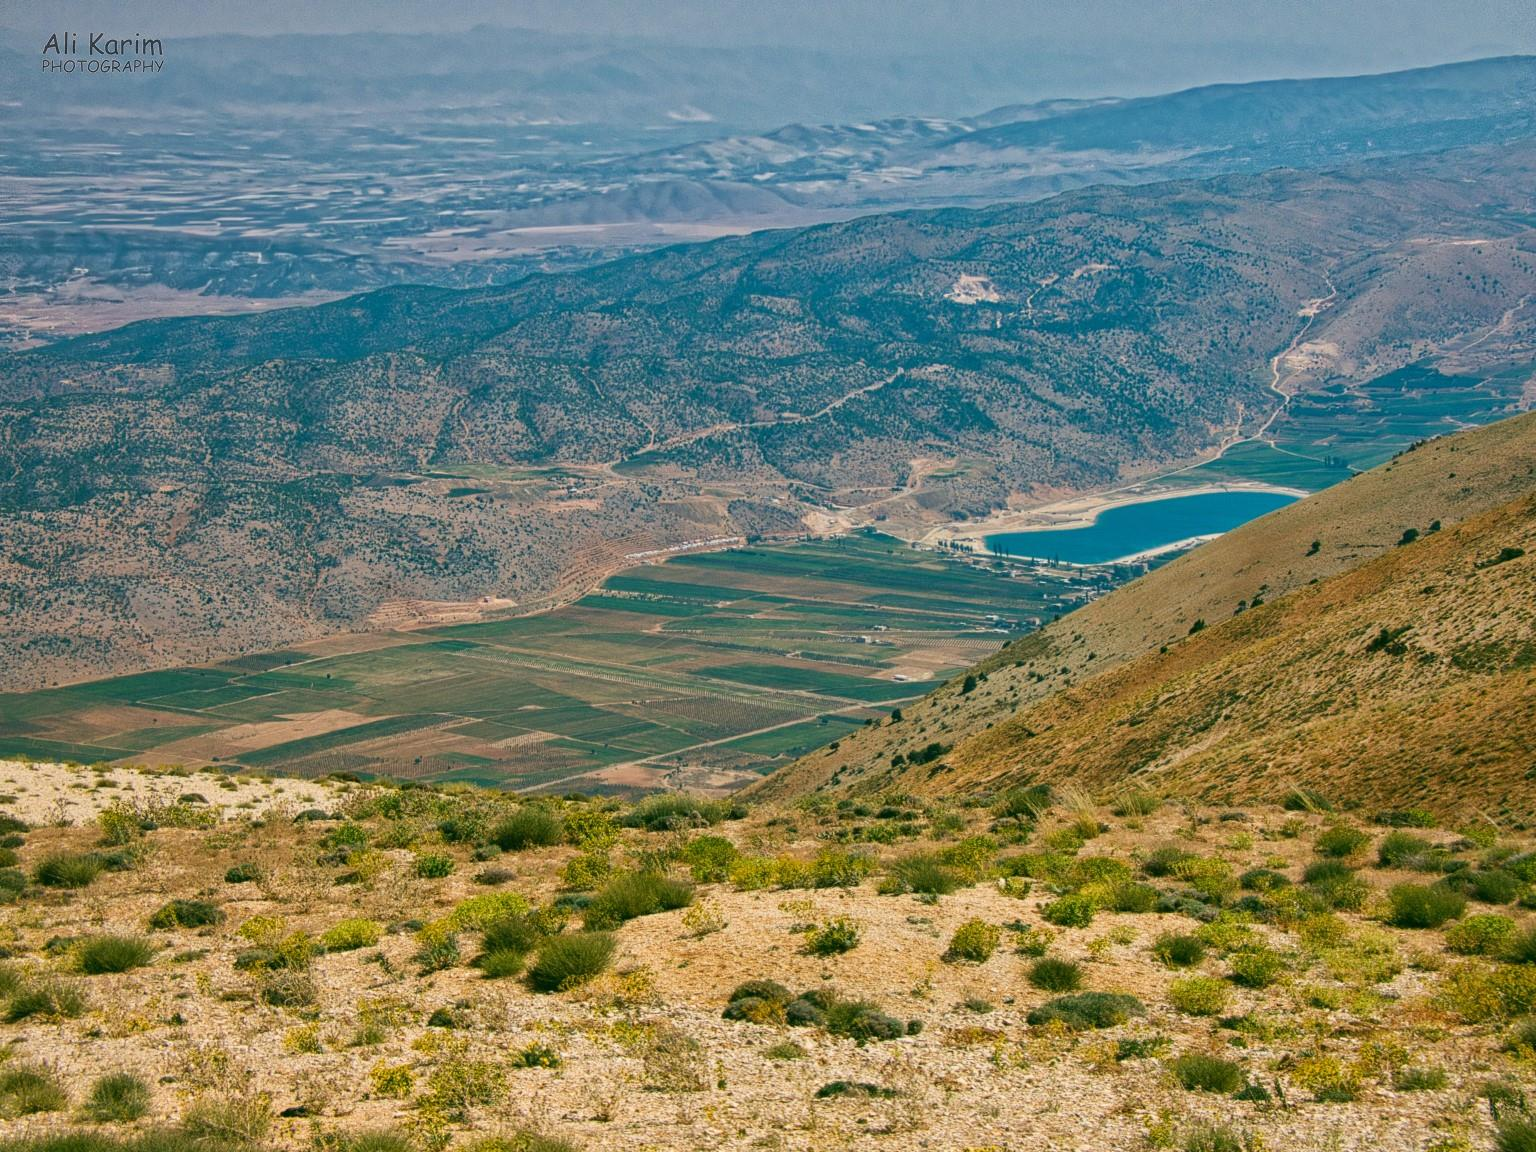 Bsharri and Quadisha Valley View of Yammoune farming community in the Bekaa valley